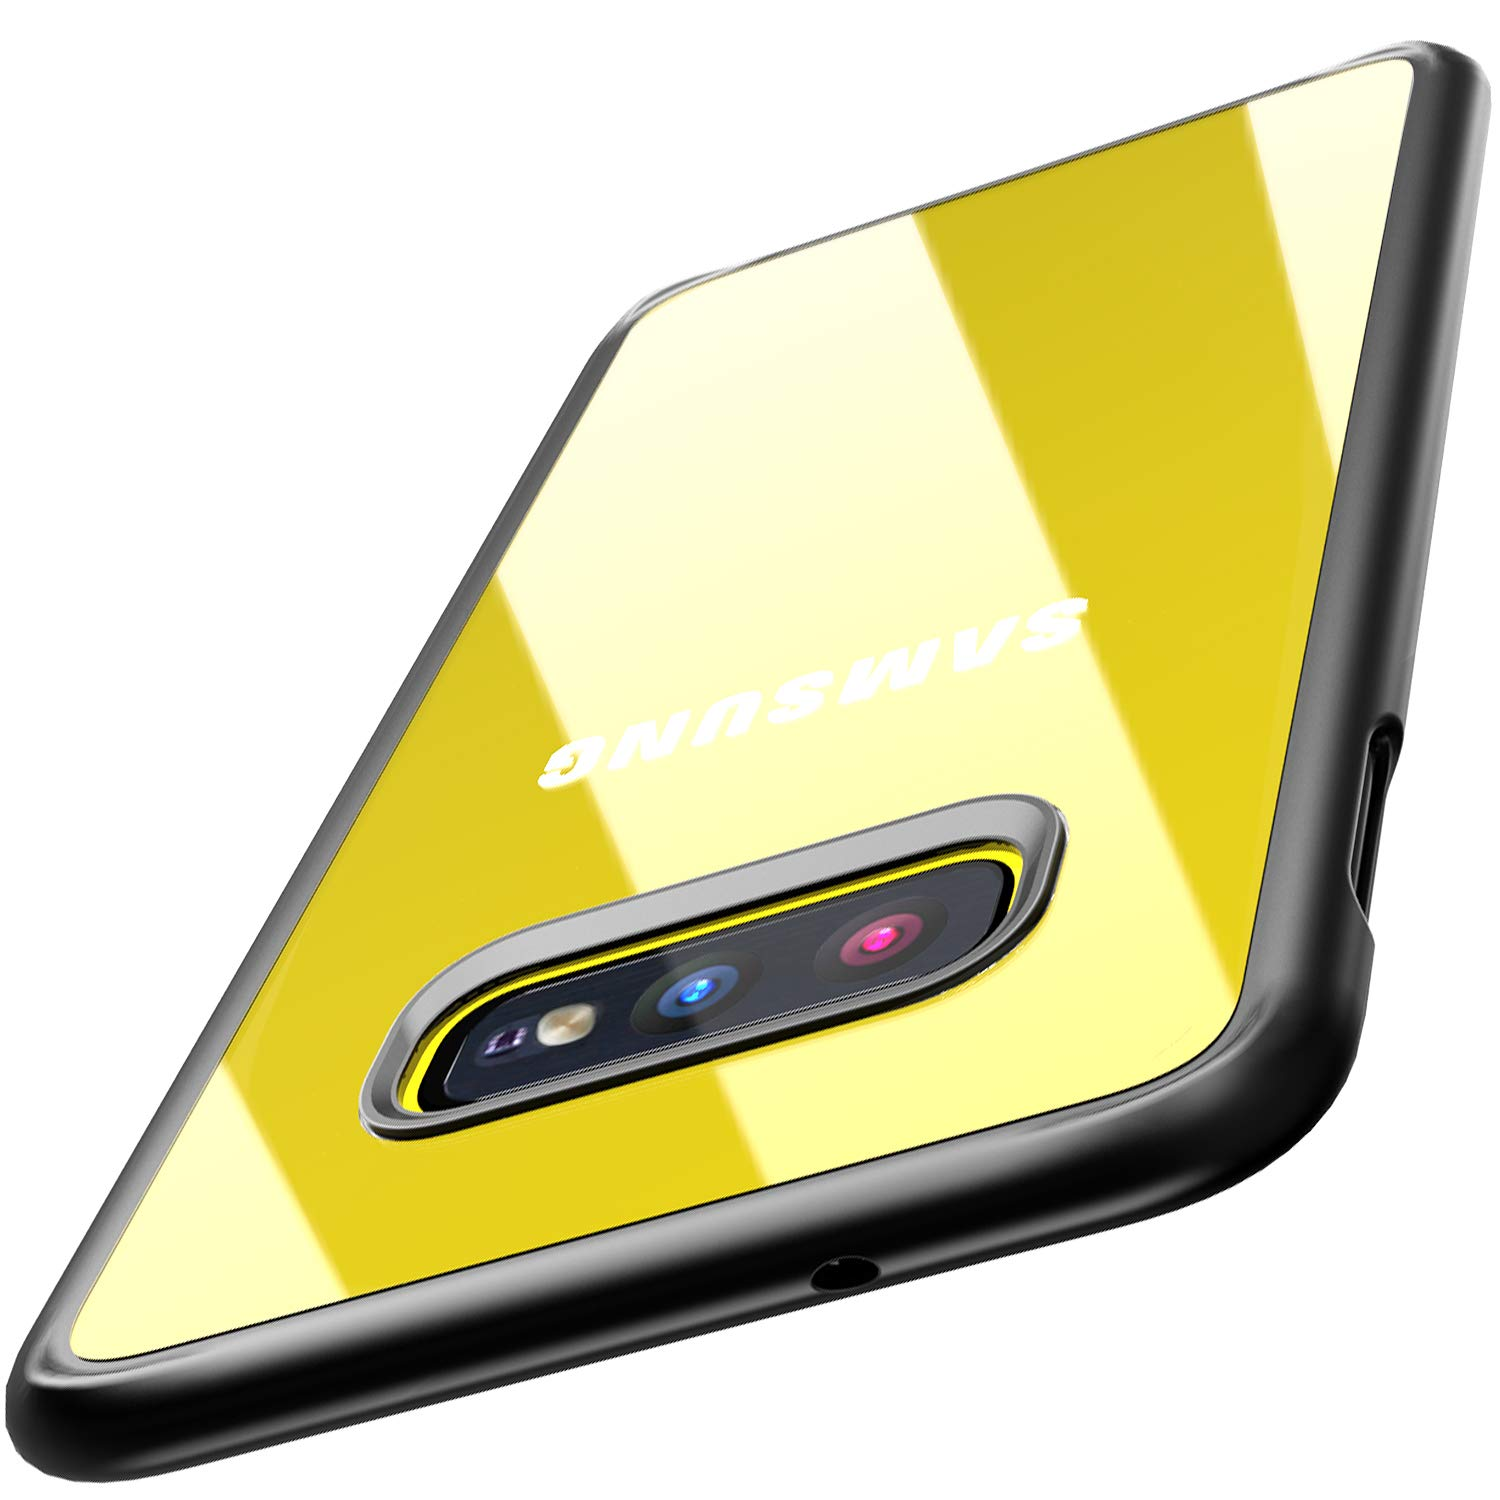 TOZO for Samsung Galaxy S10e Case 5.8 Inch (2019) Hybrid Soft Grip Matte Finish Clear Back Panel Ultra-Thin [Slim Thin Fit] Cover for Samsung Galaxy S10e